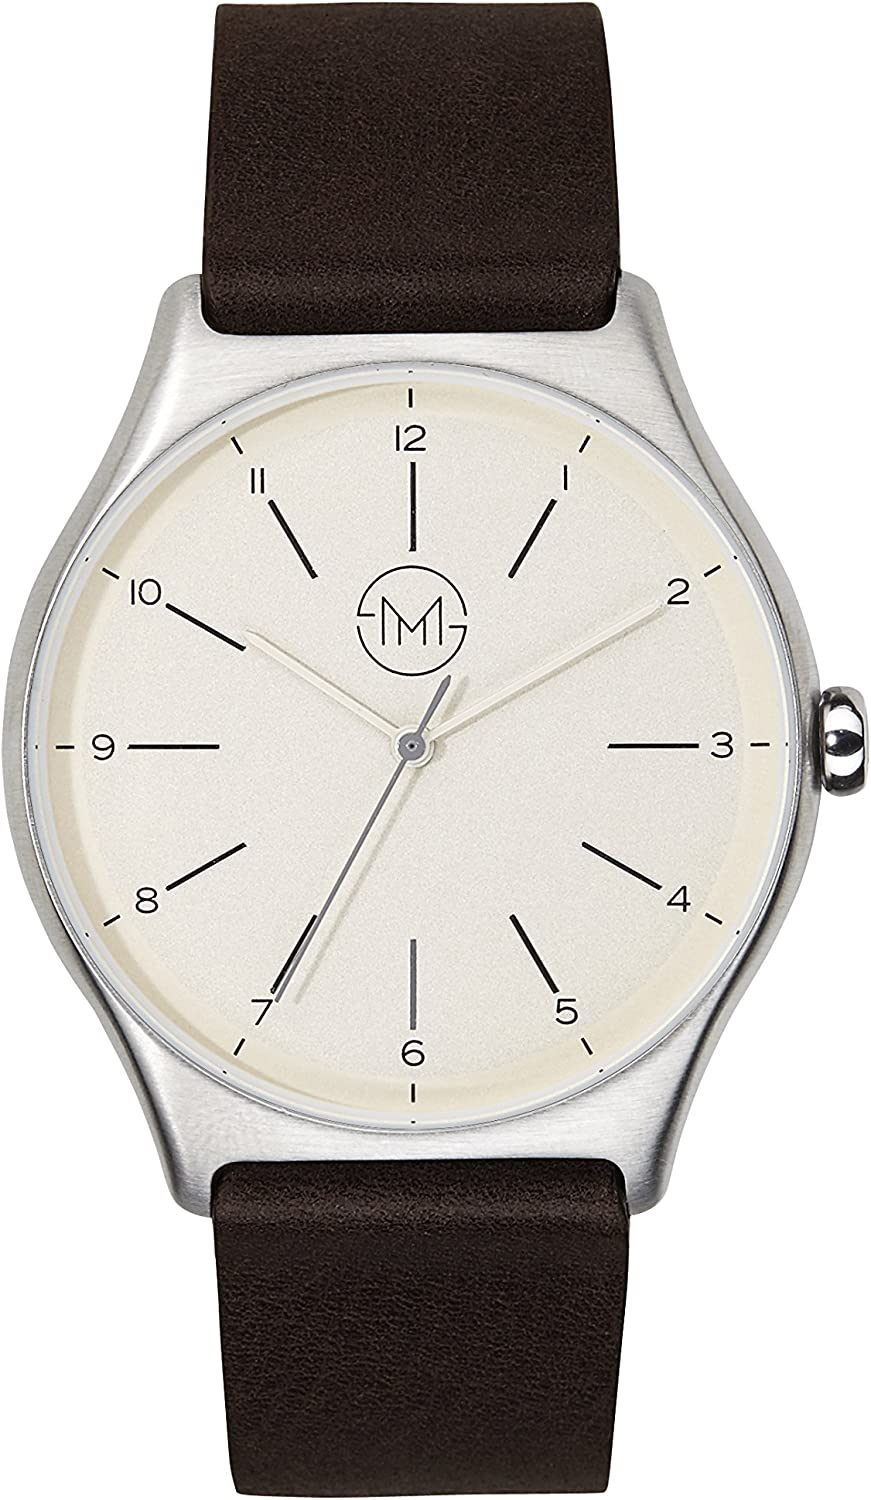 slim made one 03 – Ultra thin watch in silver brown – unisex